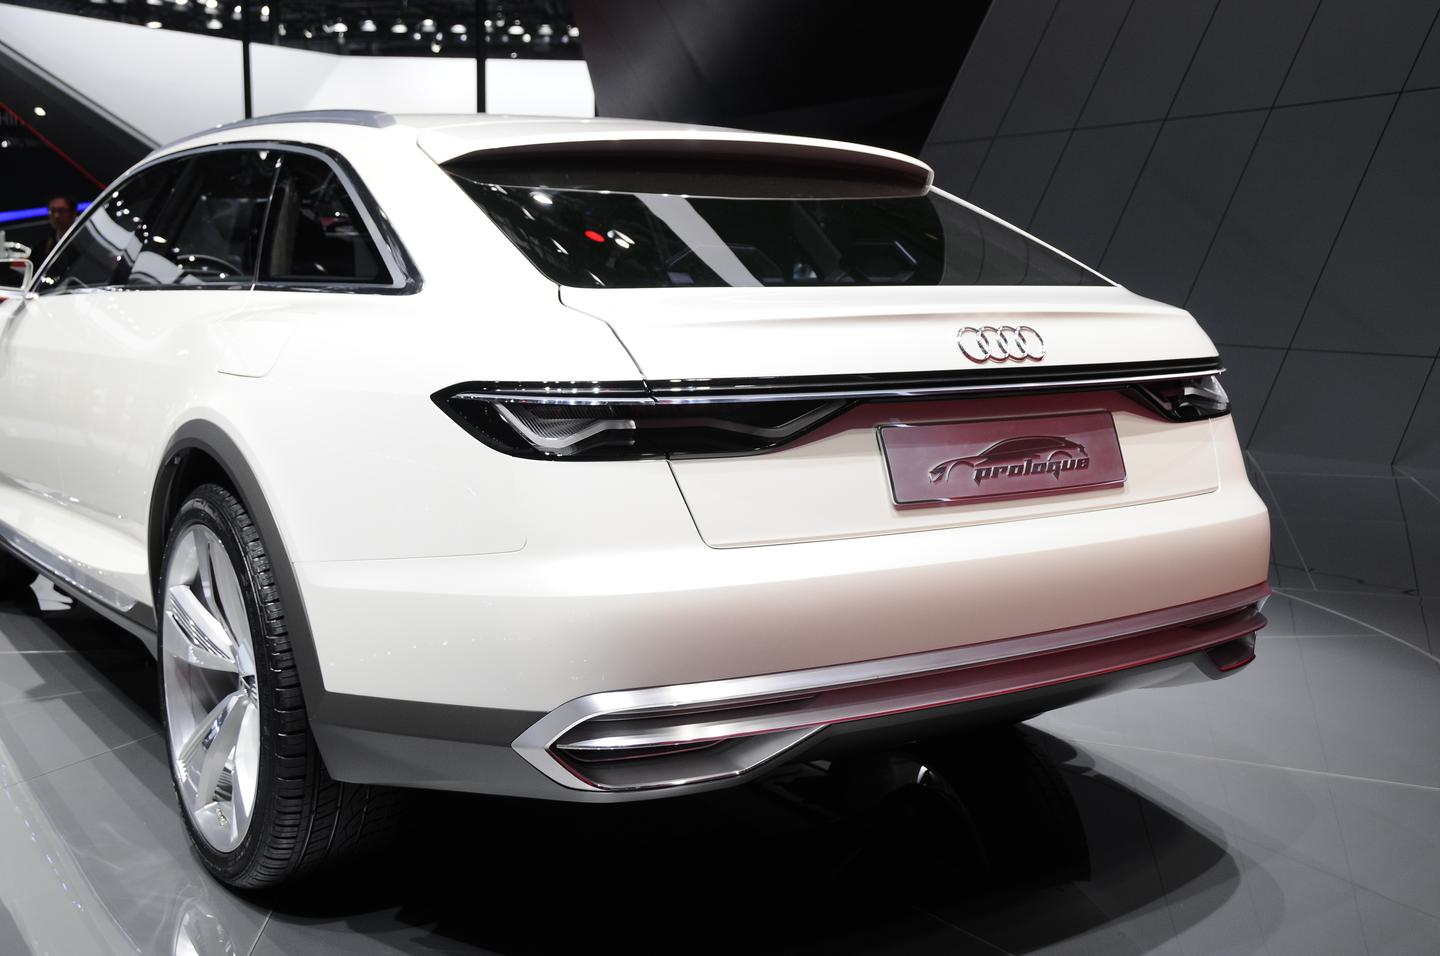 The new Prologue allroad concept shows a new rear apron design that ties the exhaust system into the overall rear fascia aesthetic